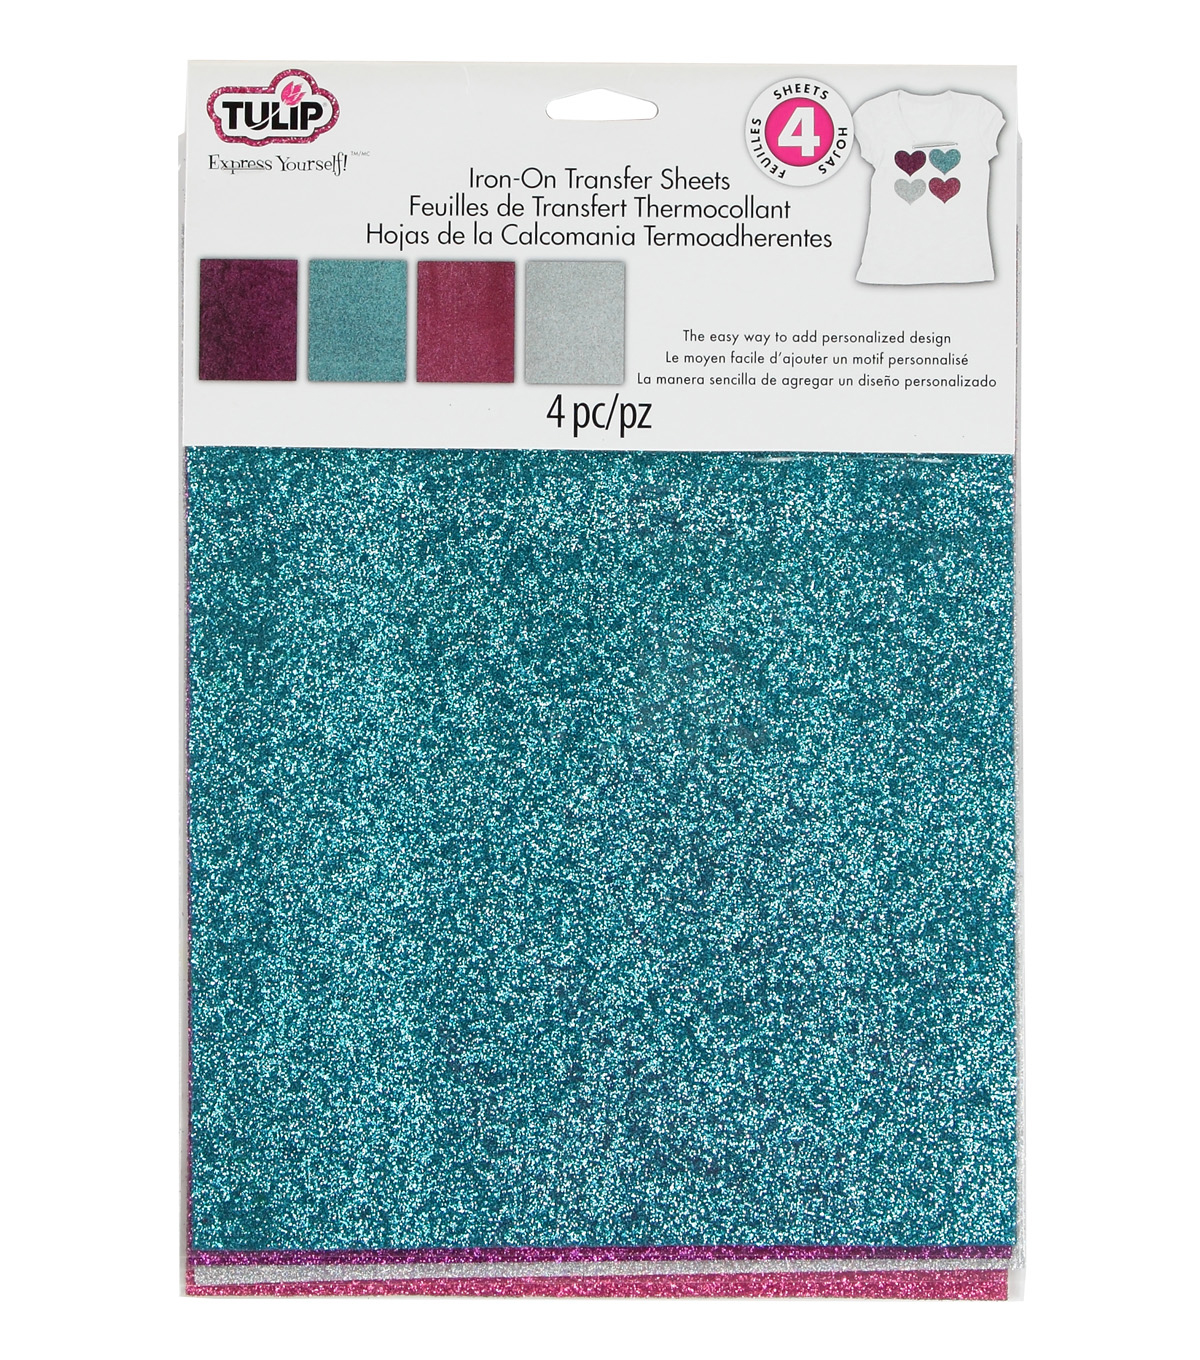 Tulip® Glam-It-Up!™ Iron-On Shimmer Transfer Sheets Urban